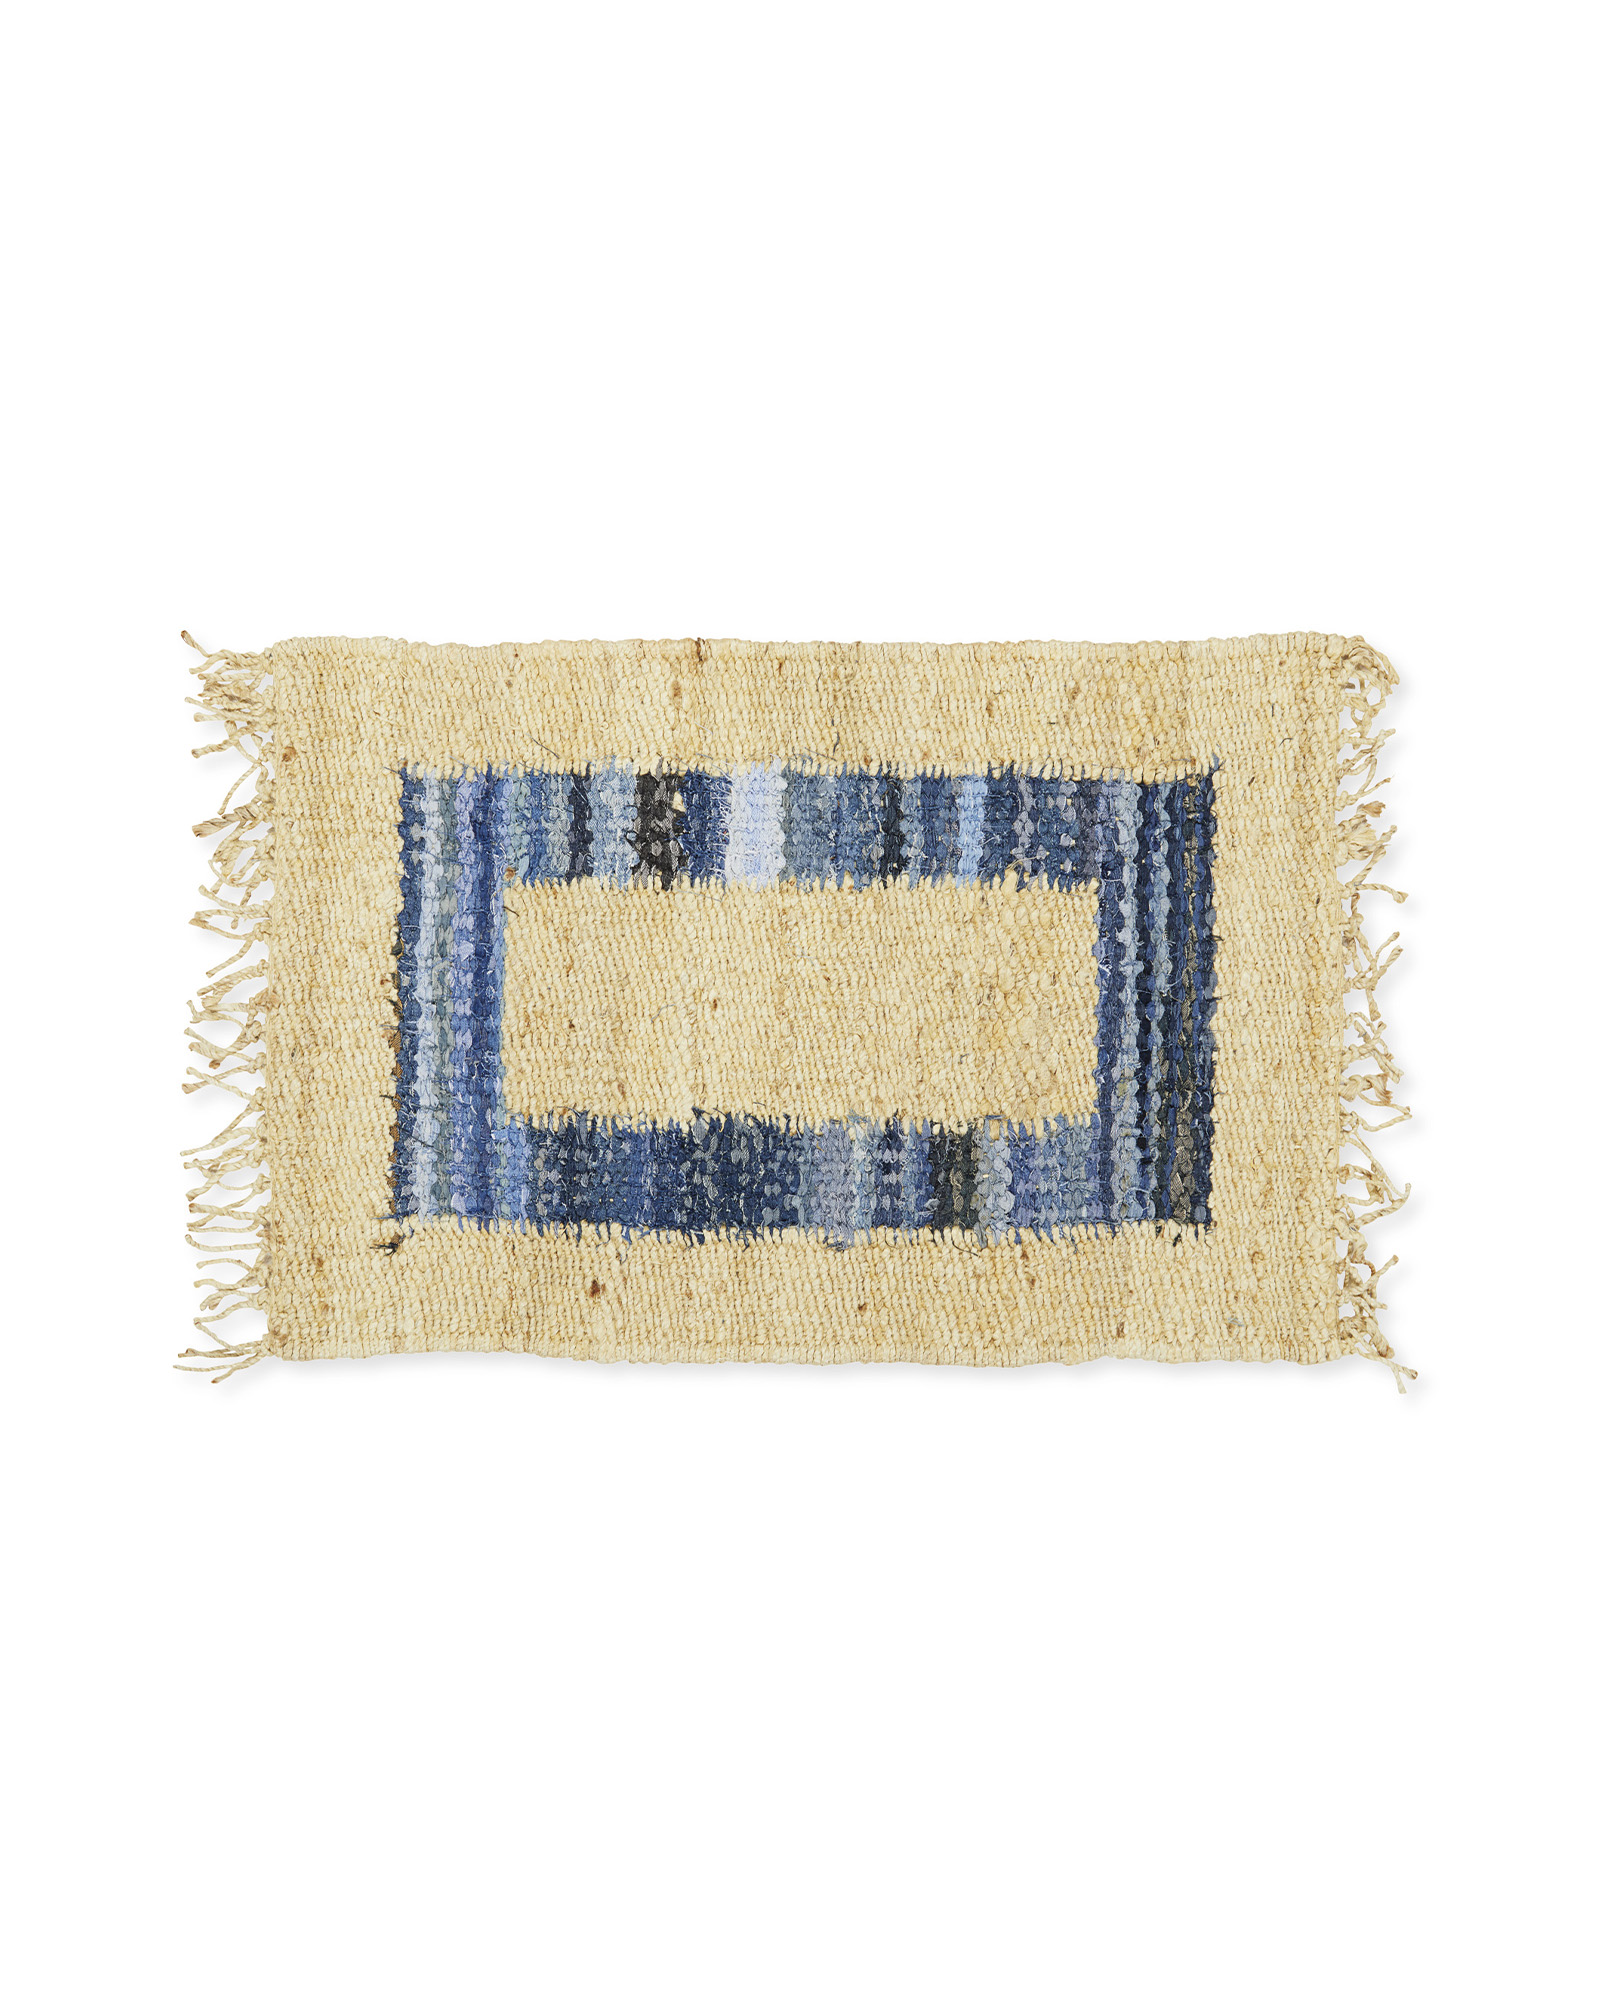 Jute Border Rug, Denim